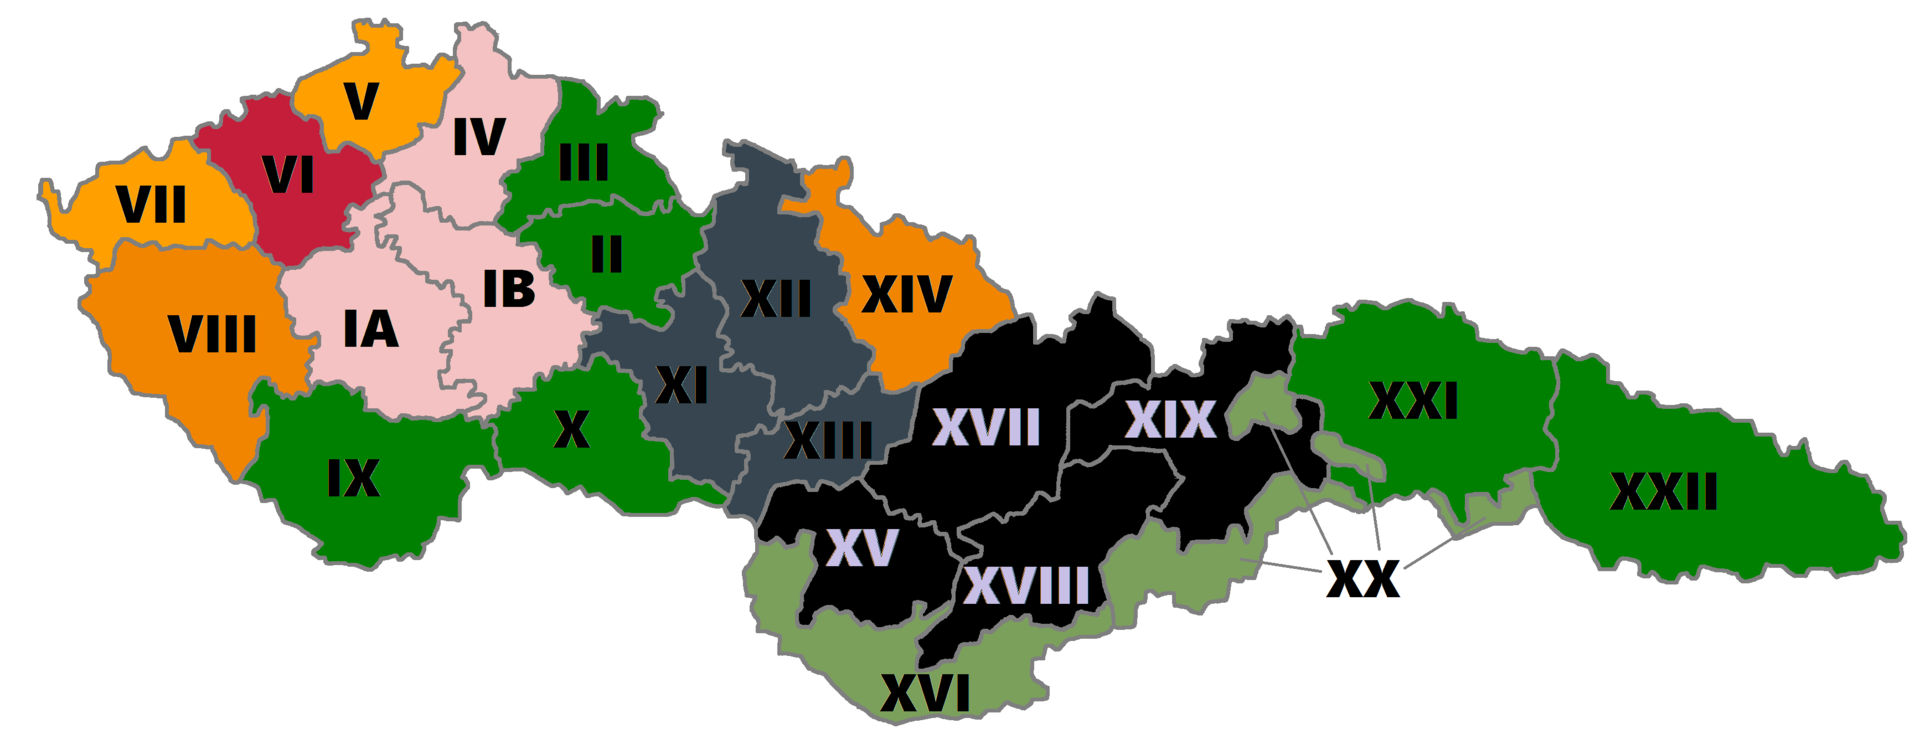 czechoslovak_election_1929_-_chamber_of_deputies_-_most_voted_party_per_electoral_district